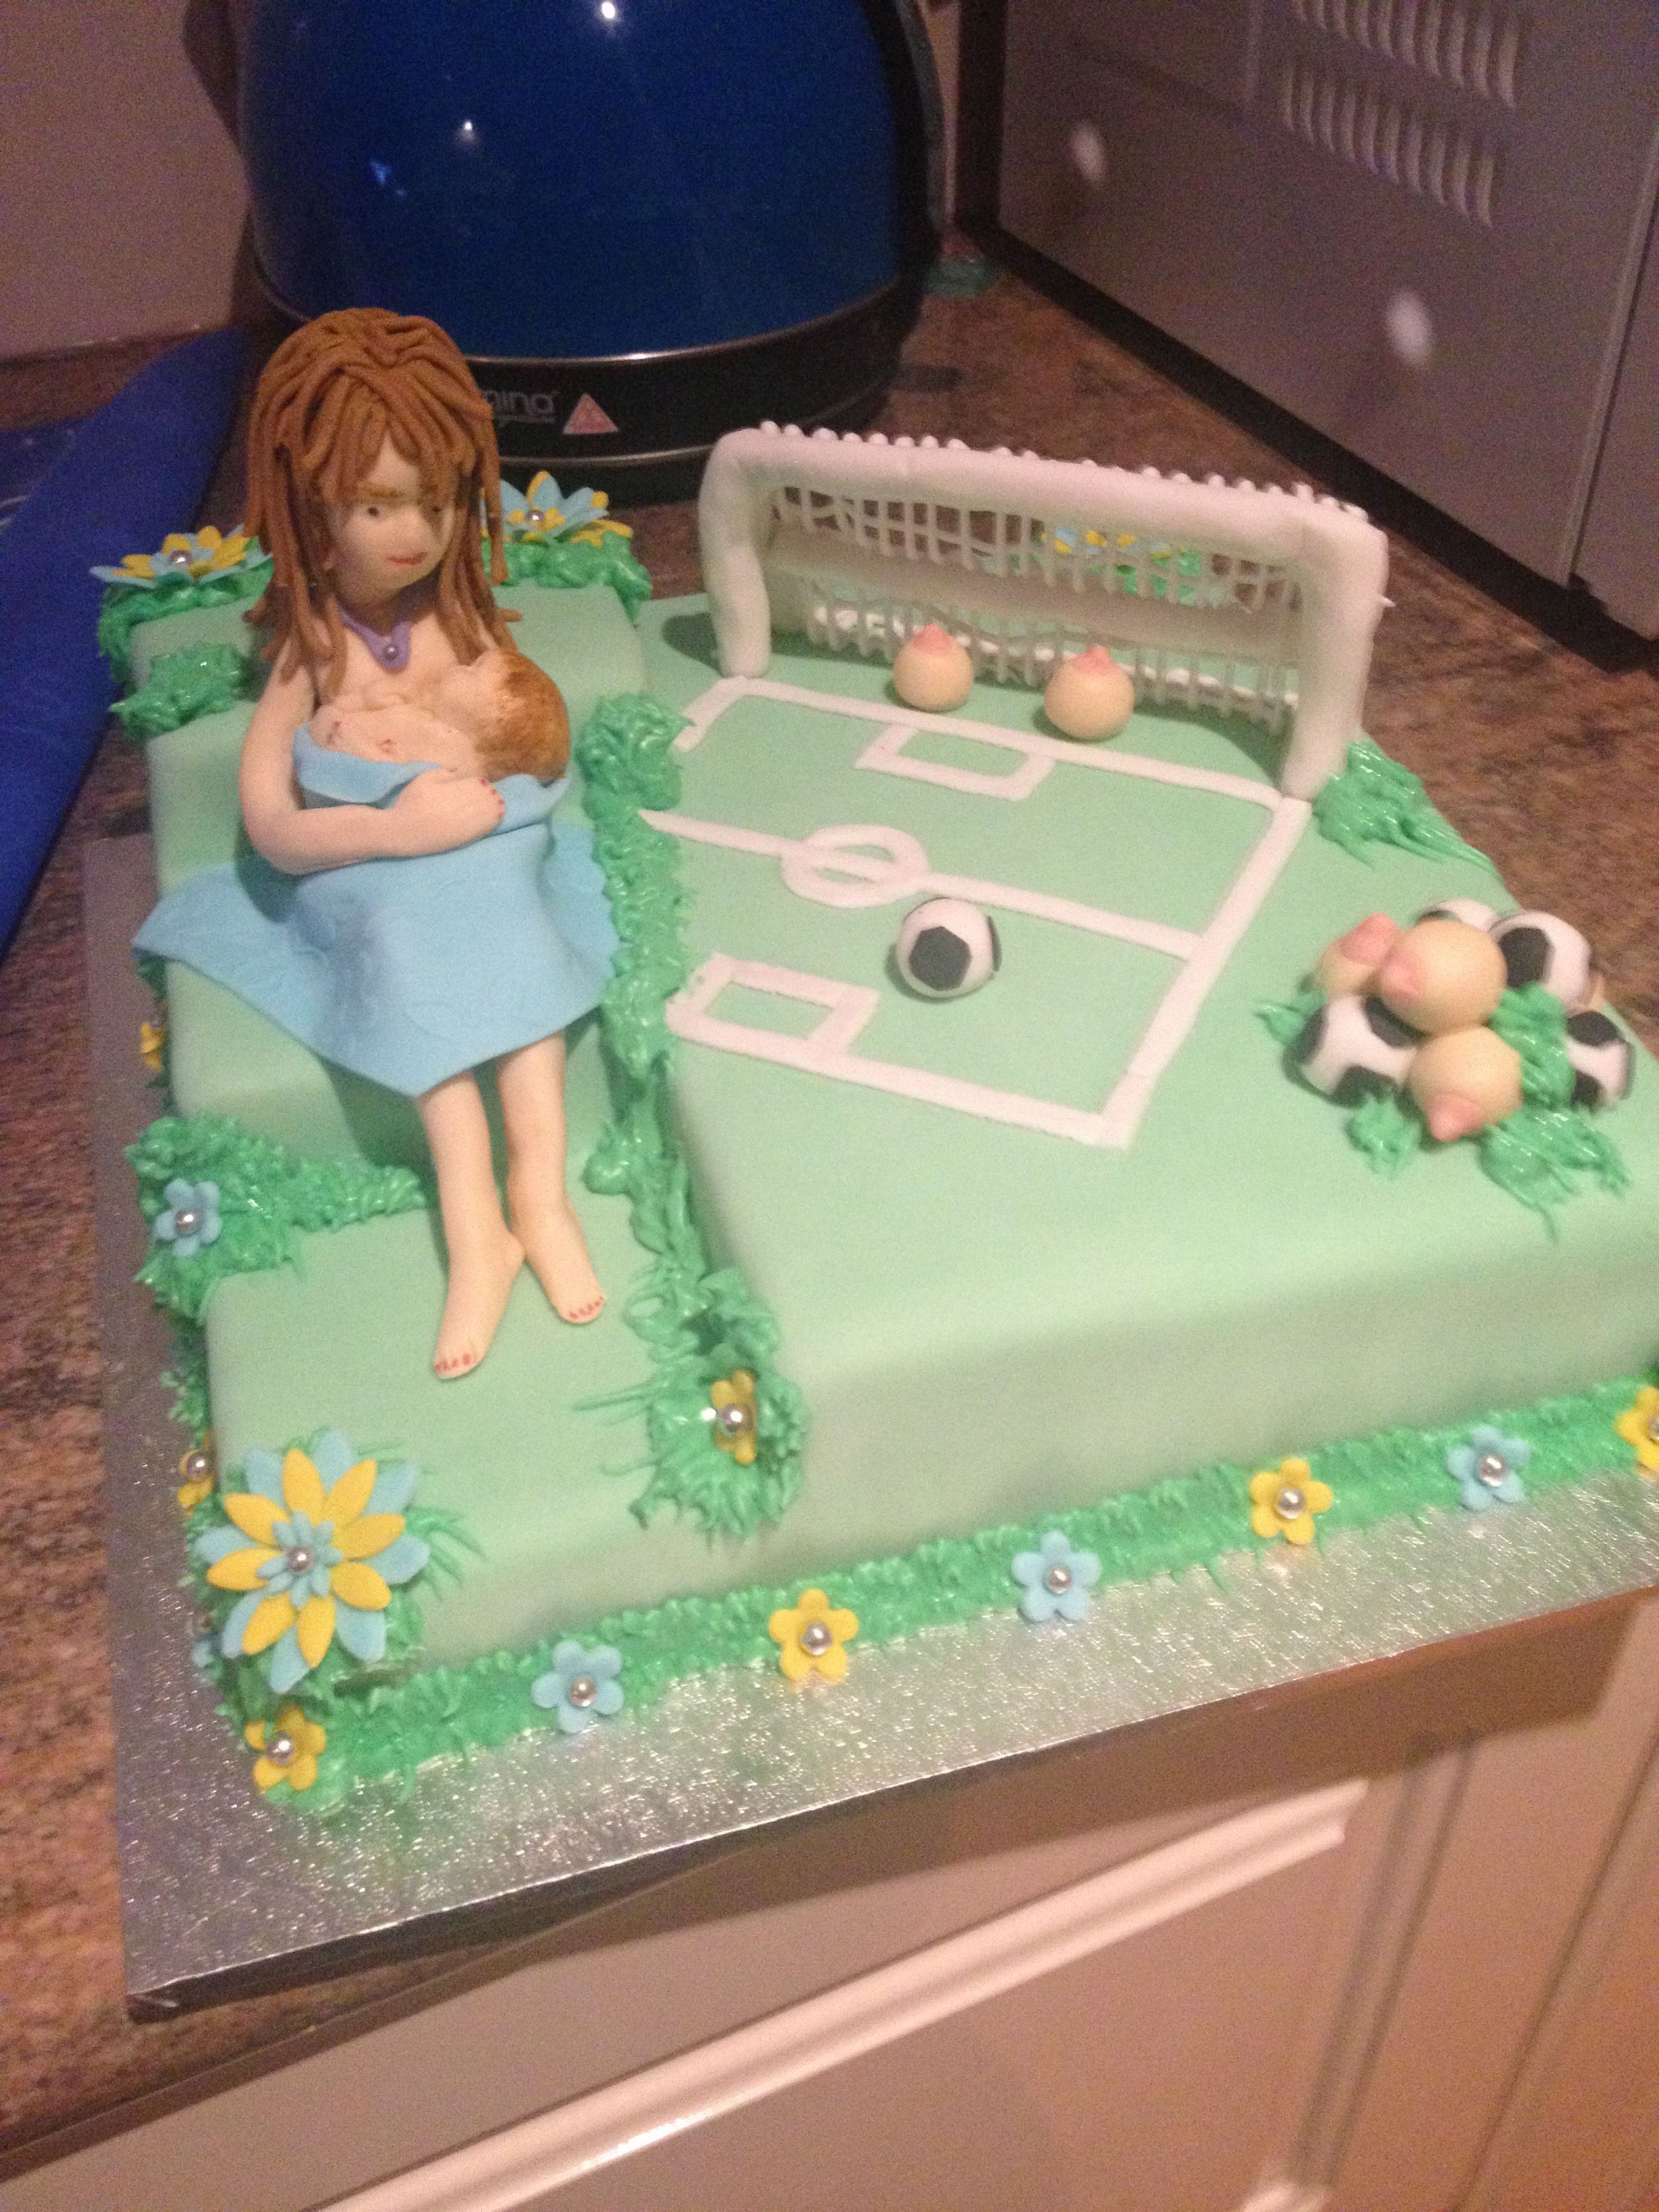 Breastfeeding Goal  Soccer Themed Cake